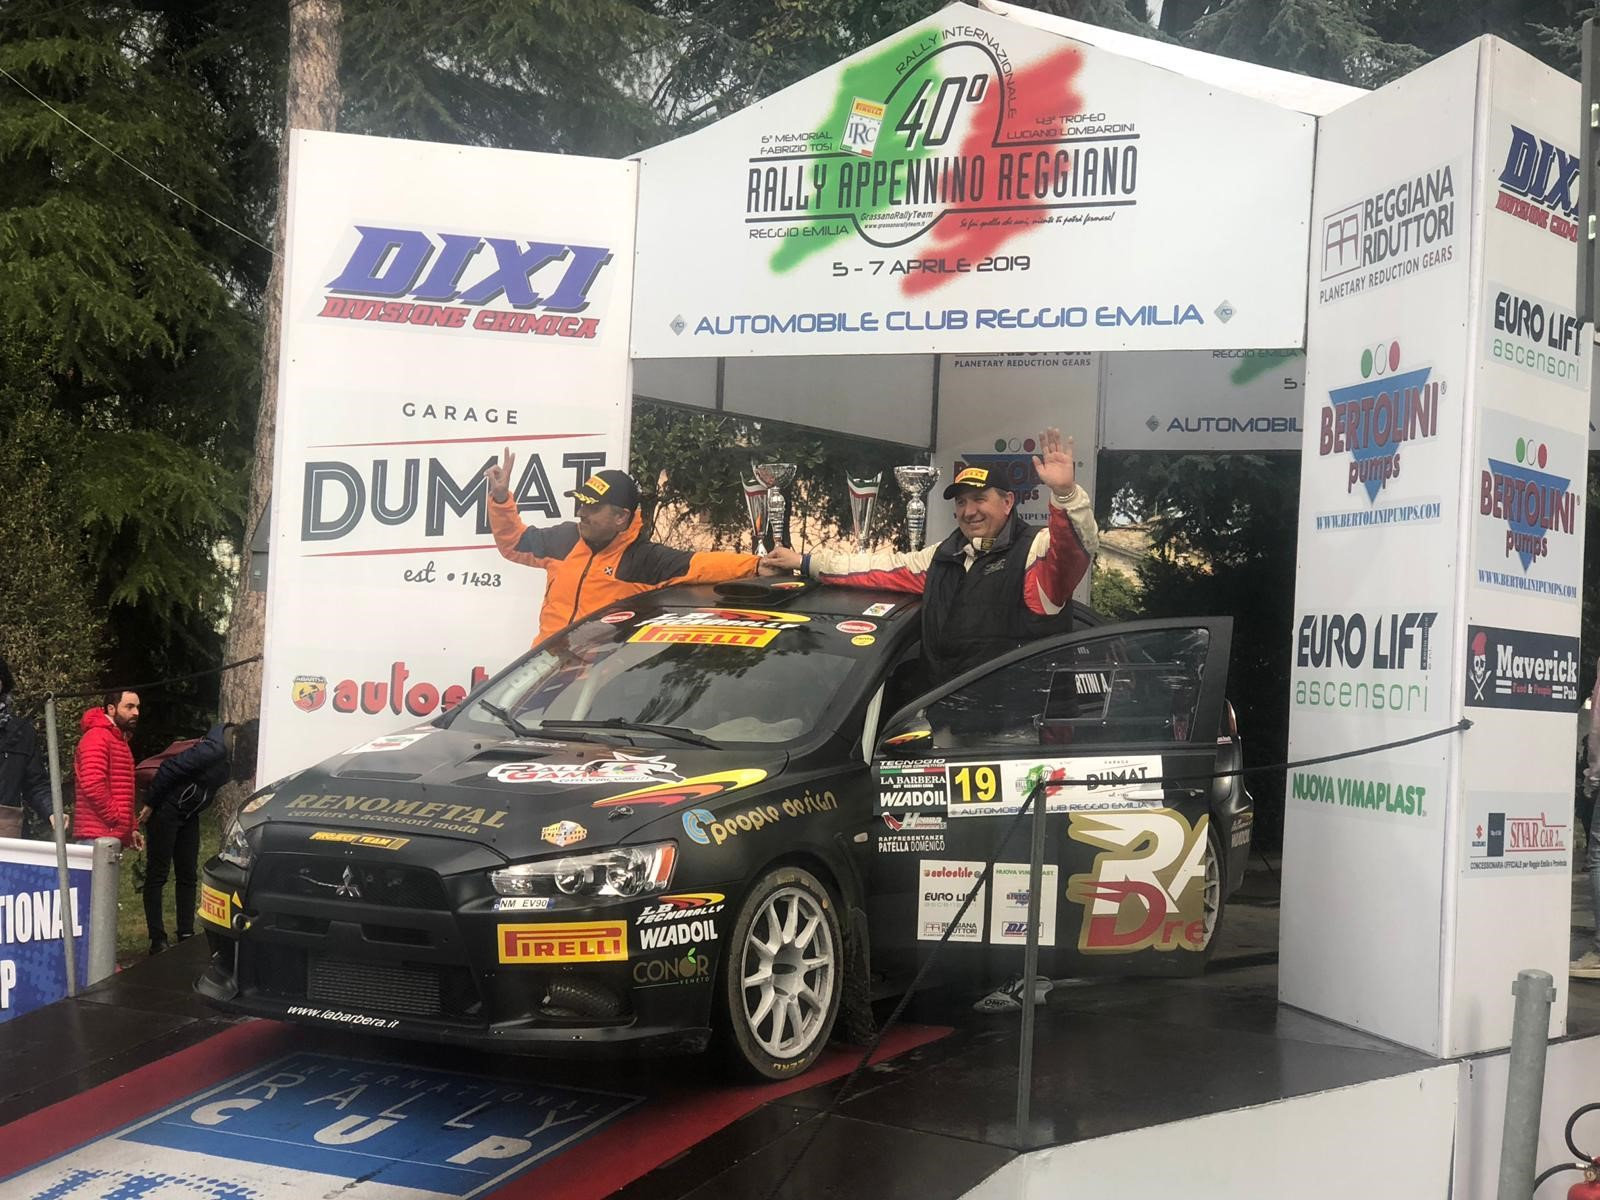 From Dakar to IRC: People Design confirms passion for rally!